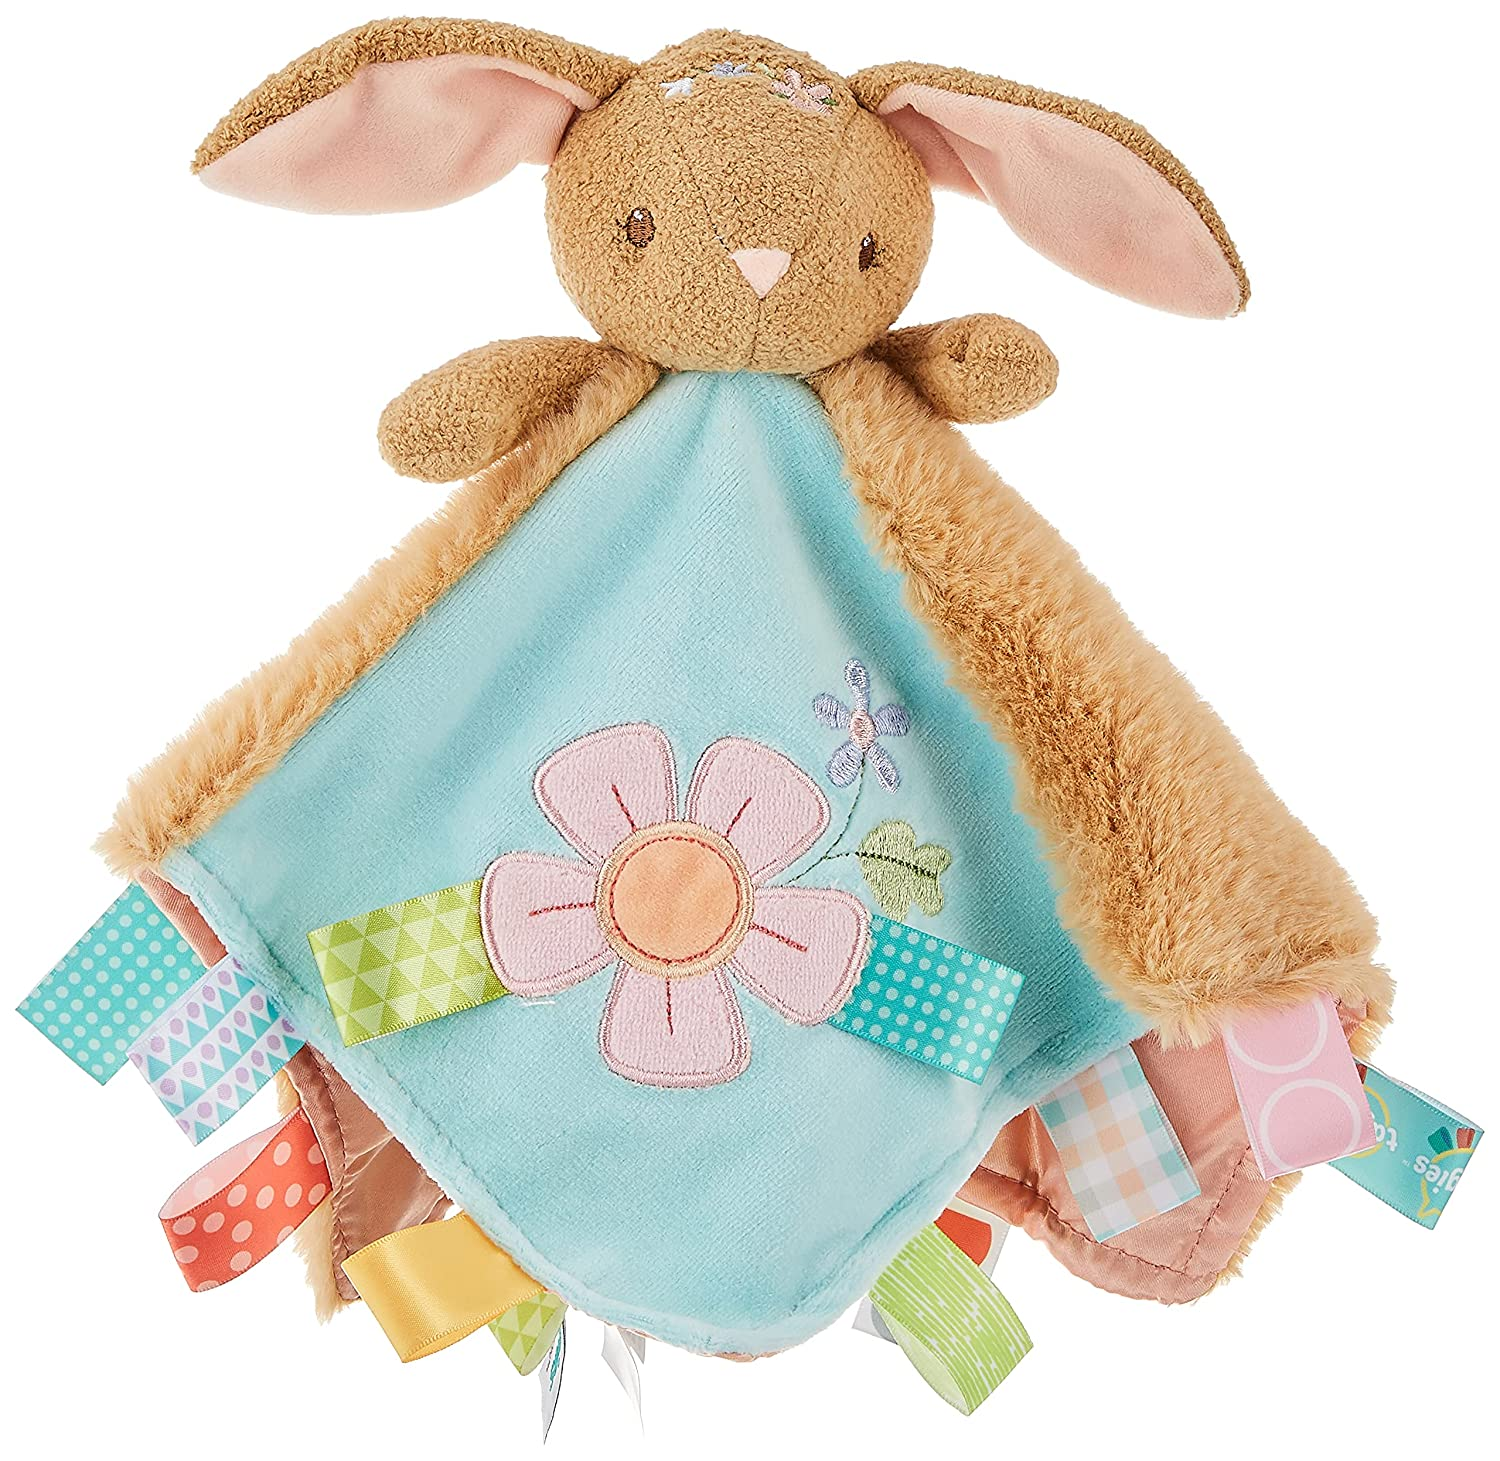 Minneapolis Mall Taggies Stuffed Animal Security Blanket Bunny NEW before selling ☆ 13 X Harmony 13